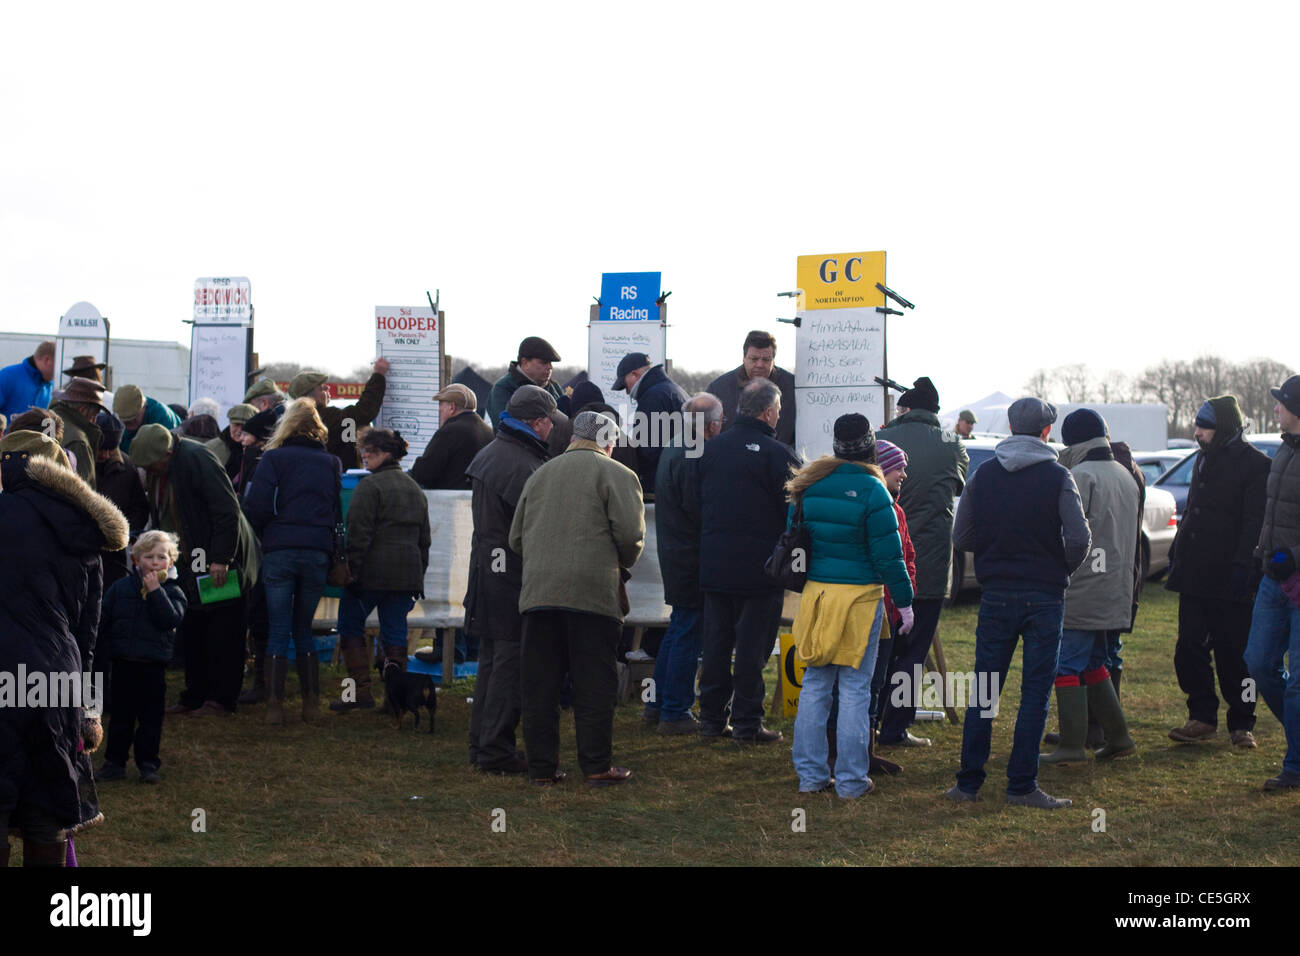 Crowds gathering to place bets with the line of Bookies on stands for the next Horse Race - Stock Image